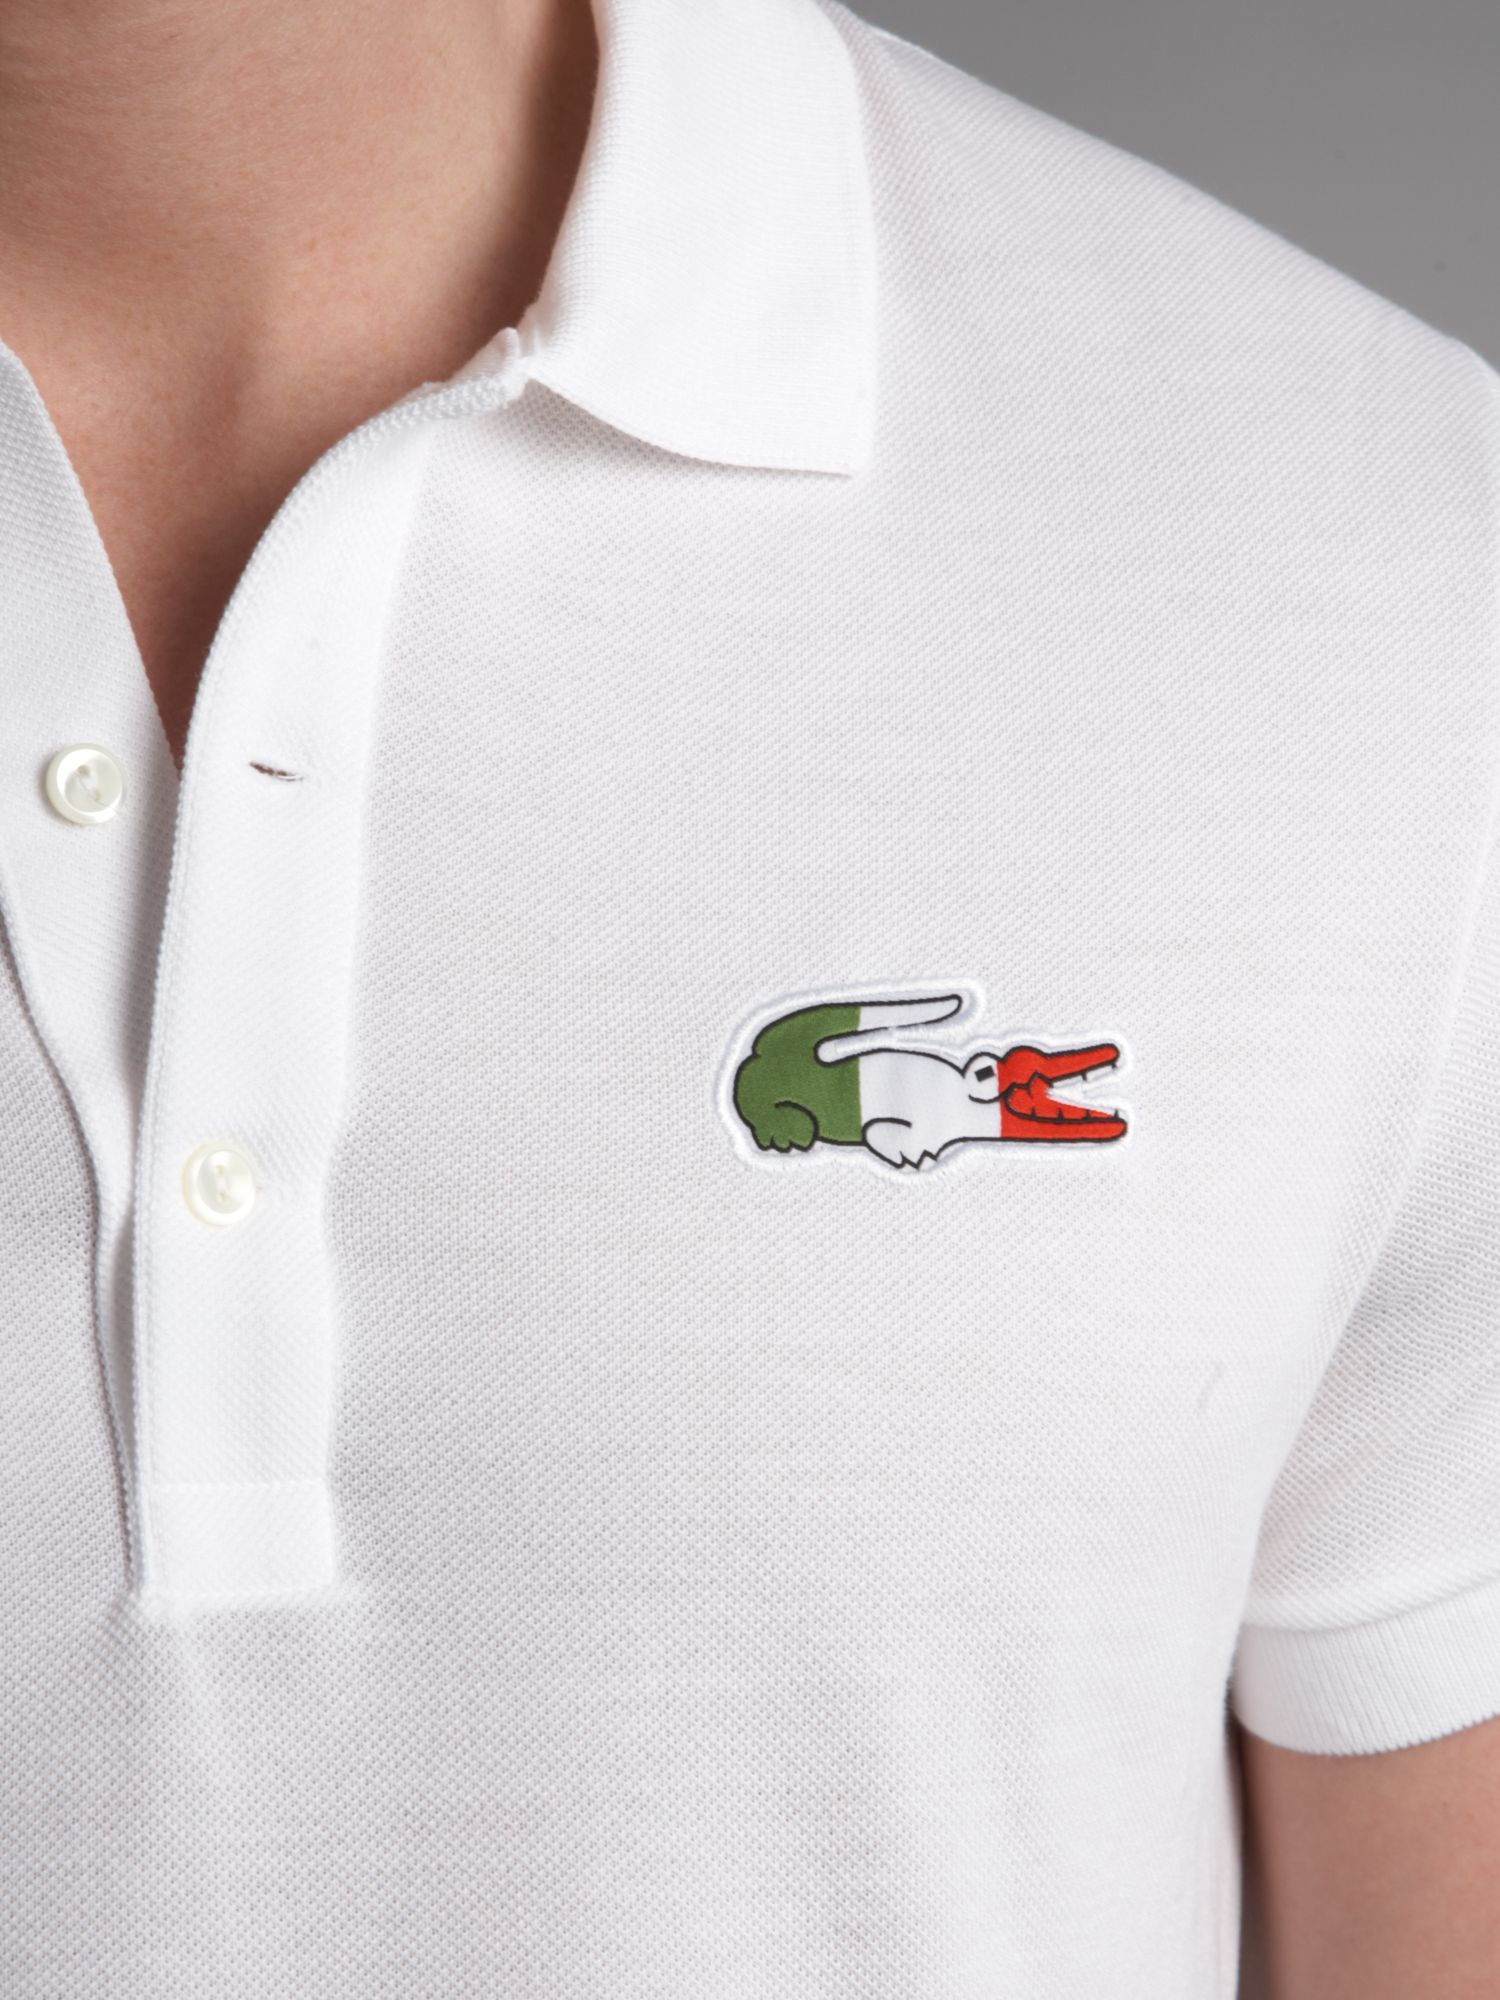 Lacoste slim fit italy croc polo shirt in white for men lyst for Lacoste poloshirt weiay